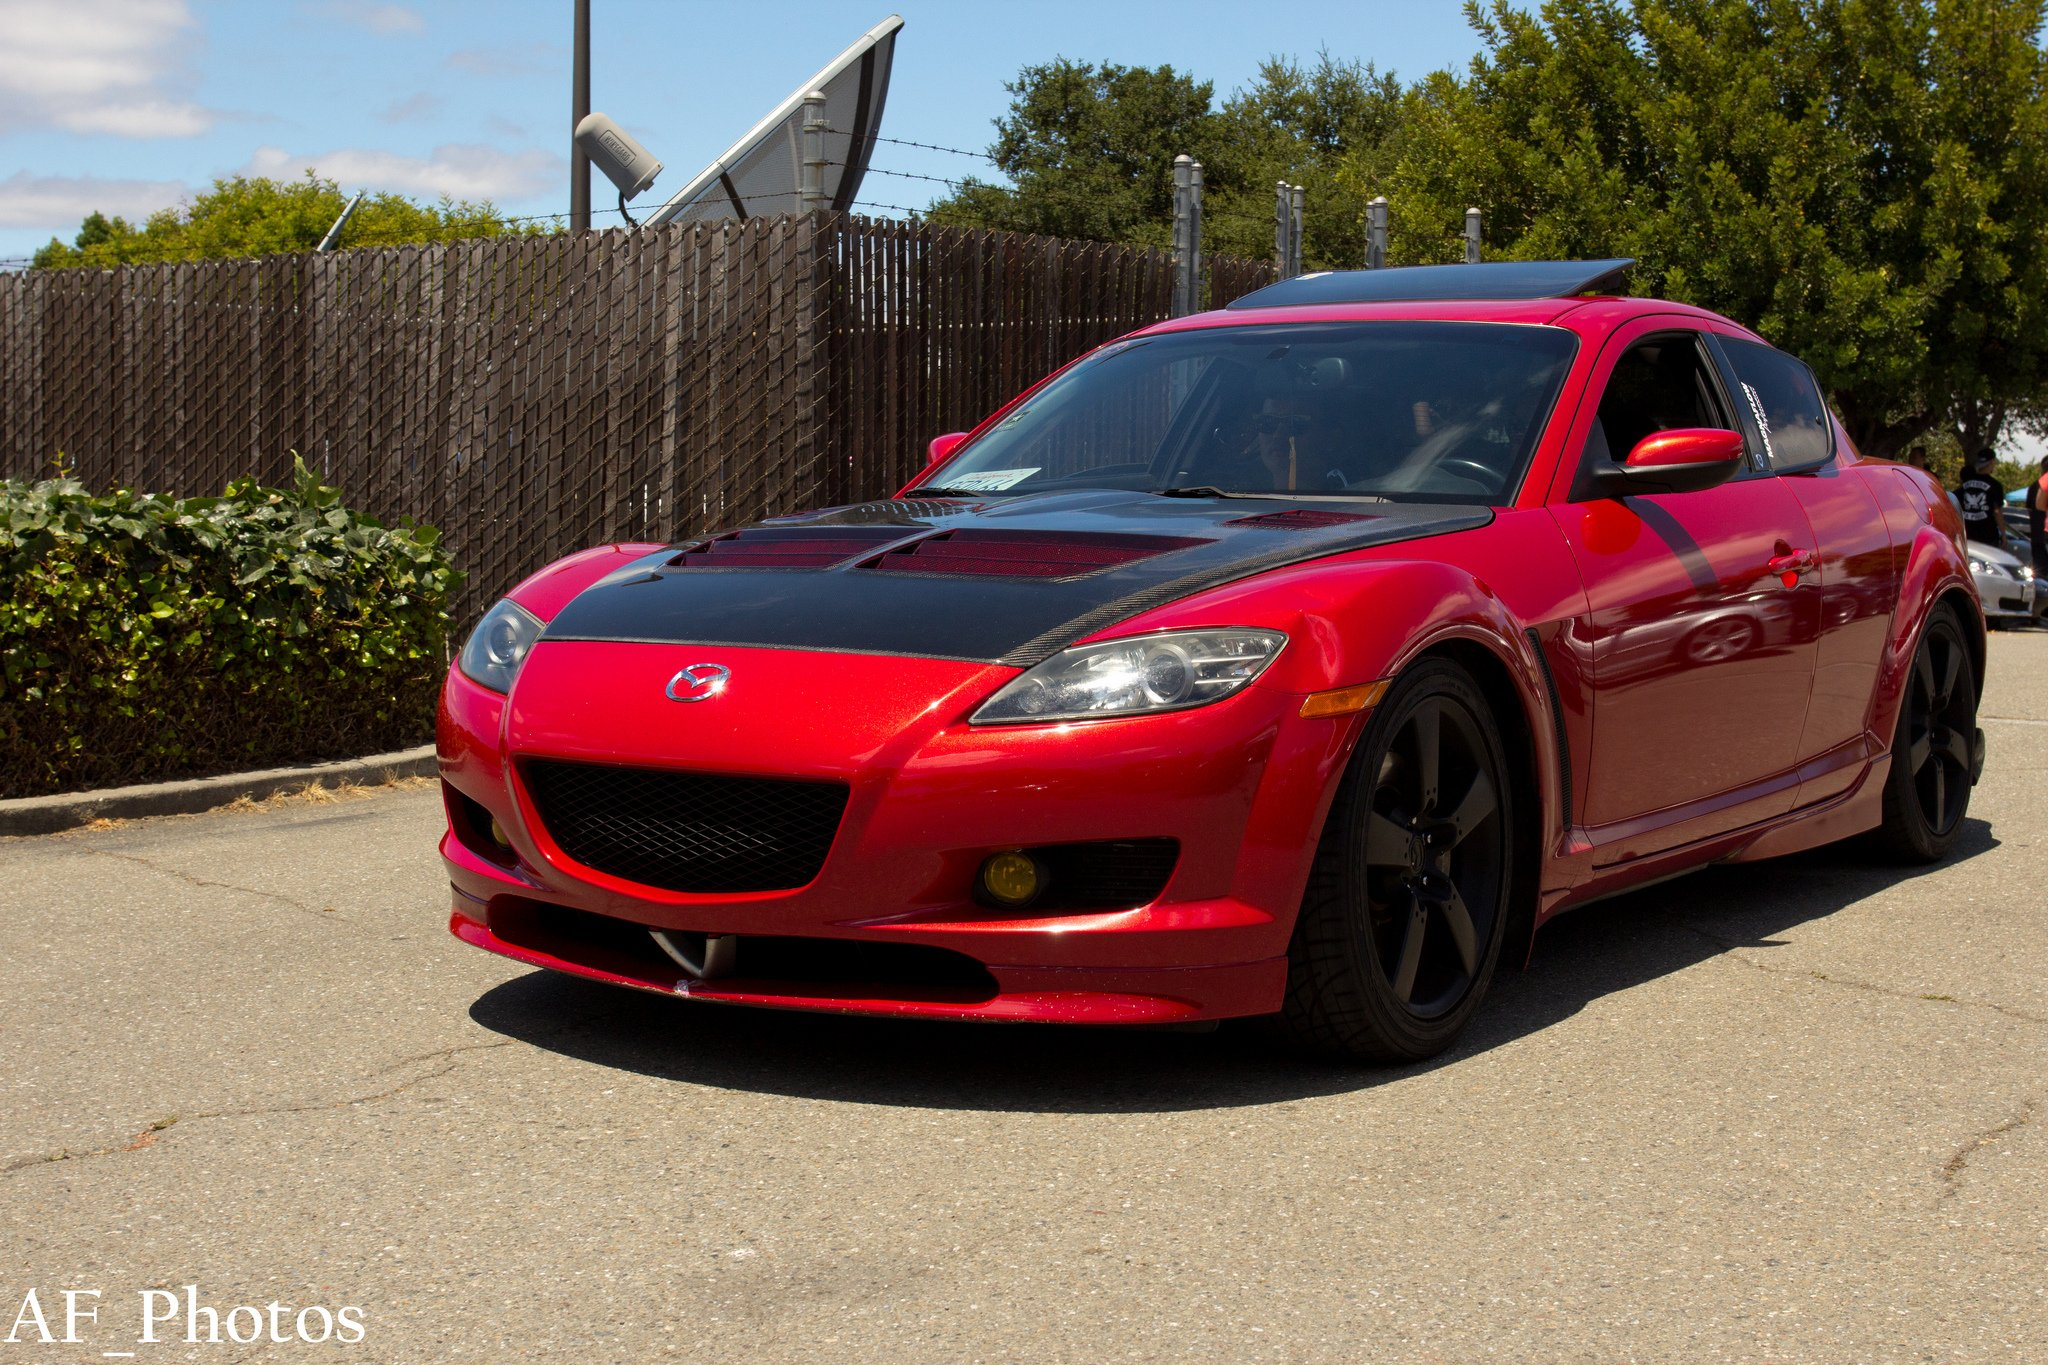 mazda rx8 coupe tuning japan body kit cars wallpaper 2048x1365 498726 wallpaperup. Black Bedroom Furniture Sets. Home Design Ideas